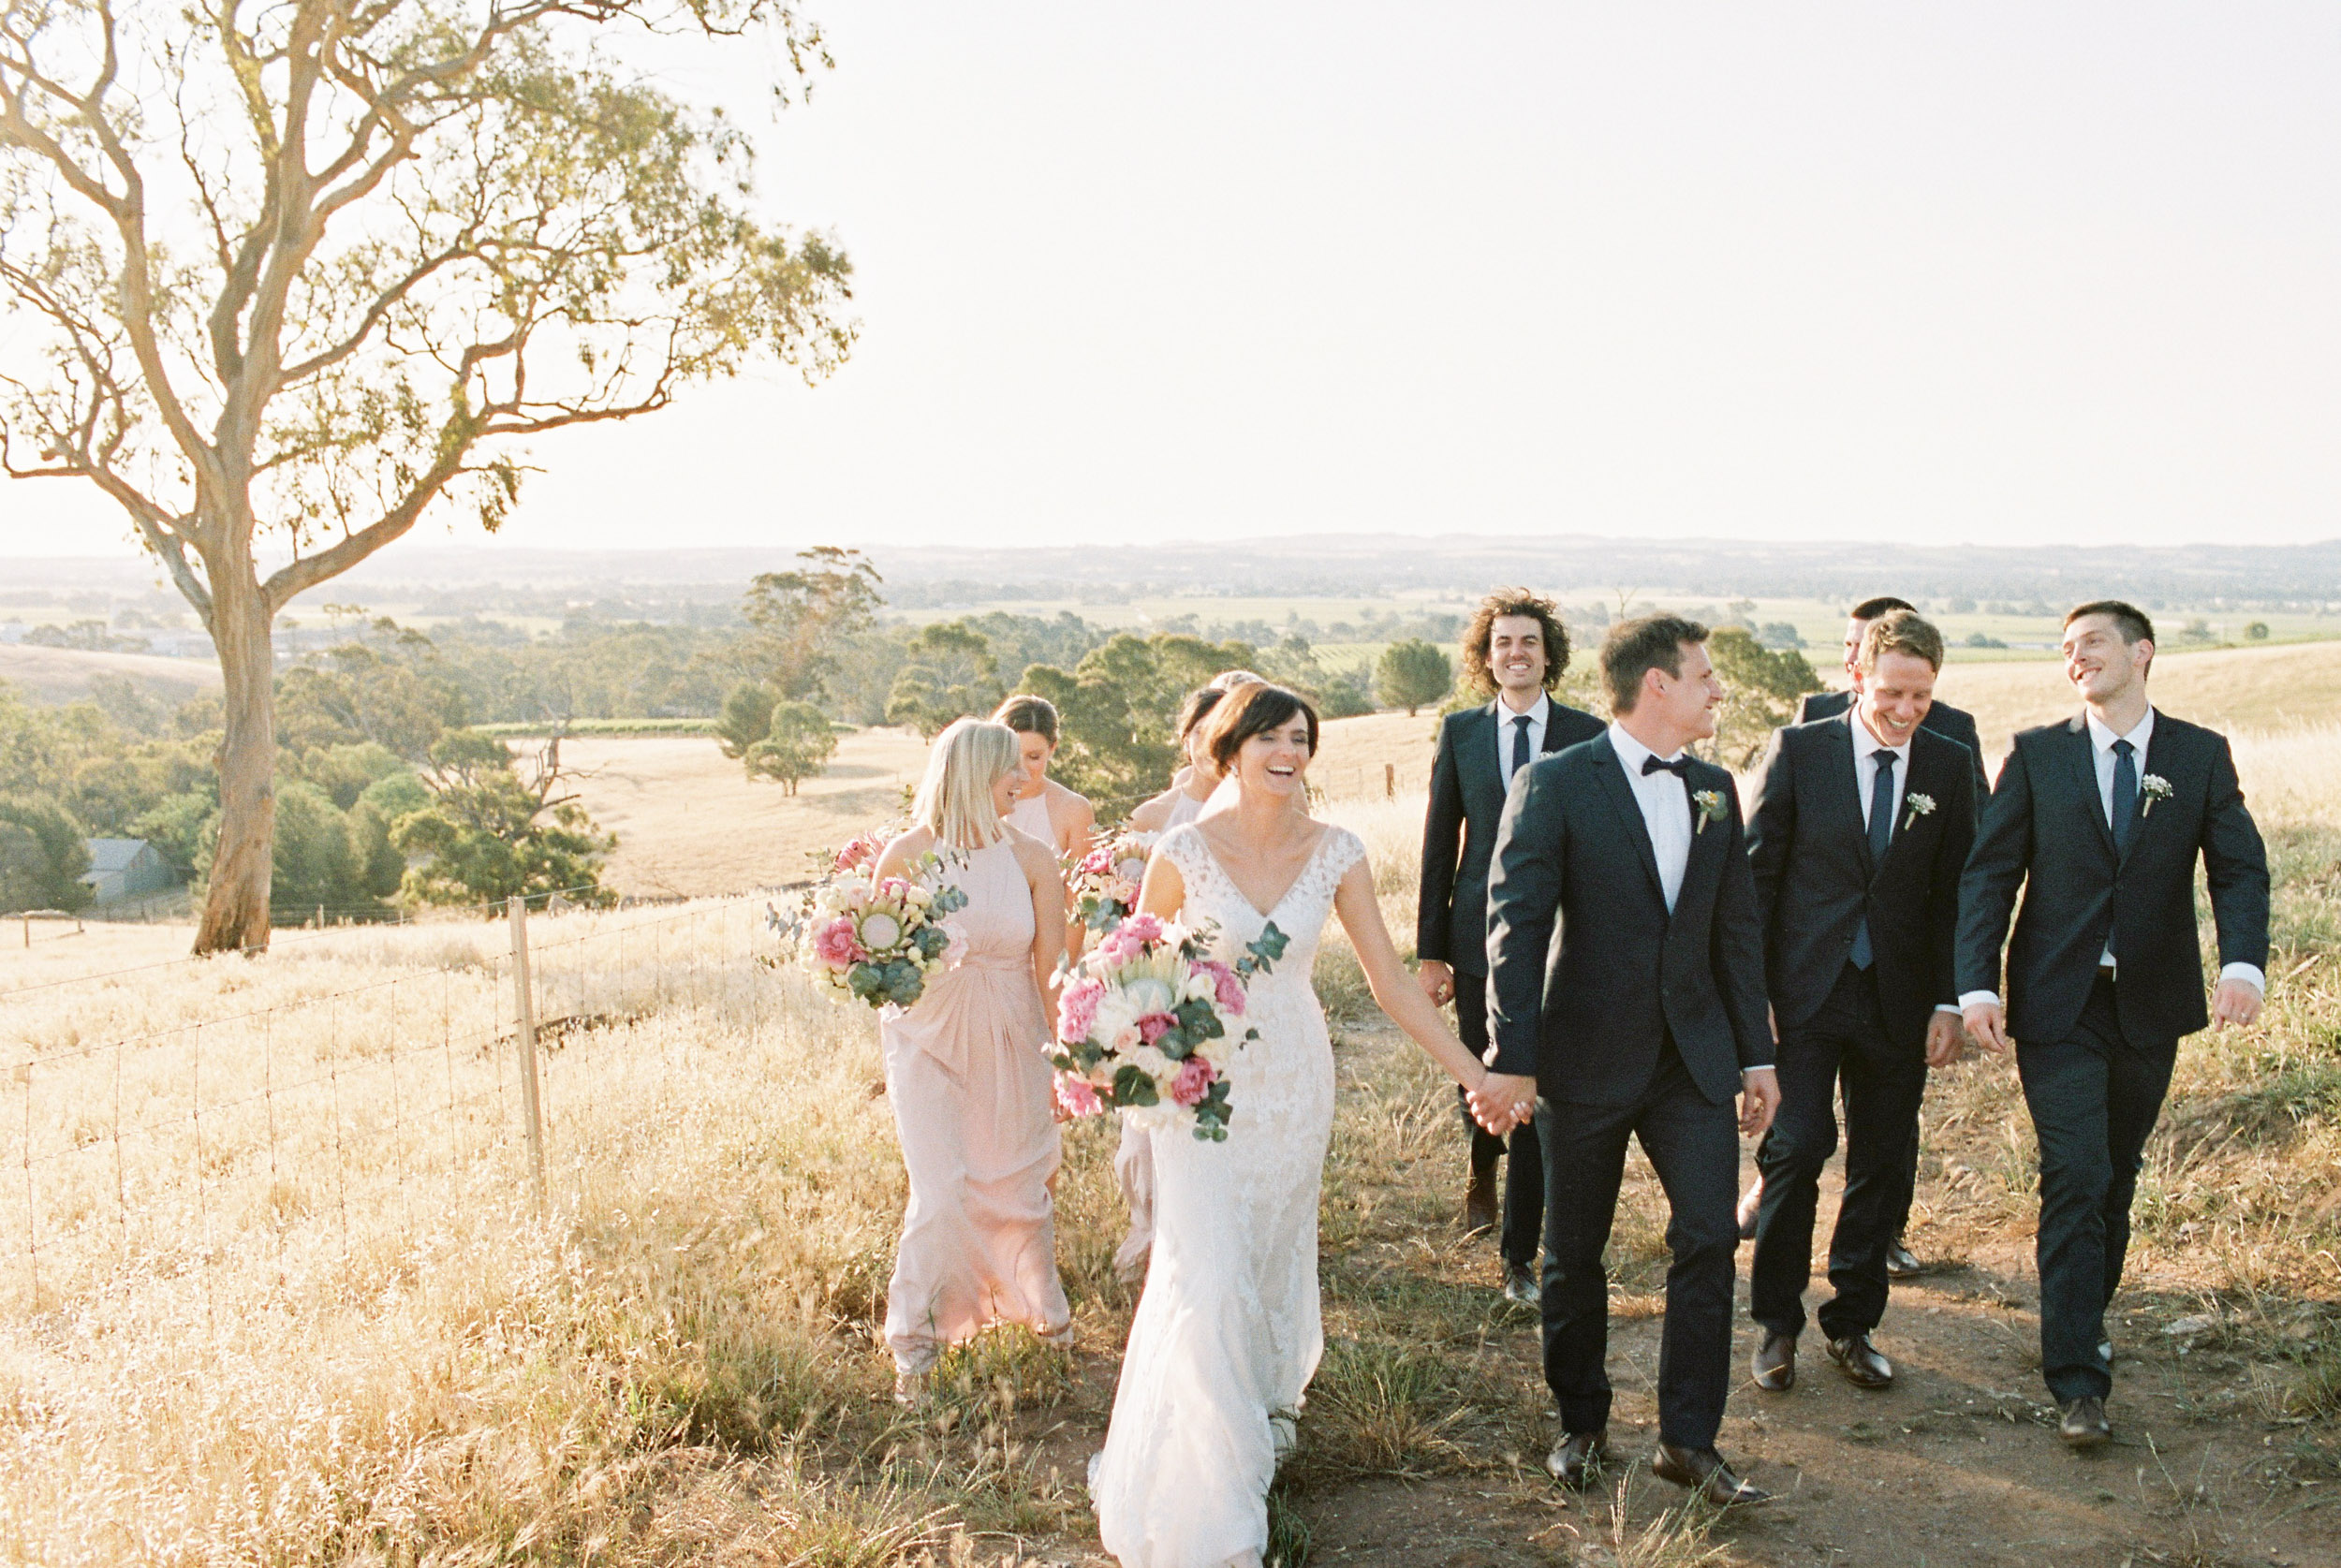 Union_Chapel_Barossa_Valley_Wedding-081.jpg